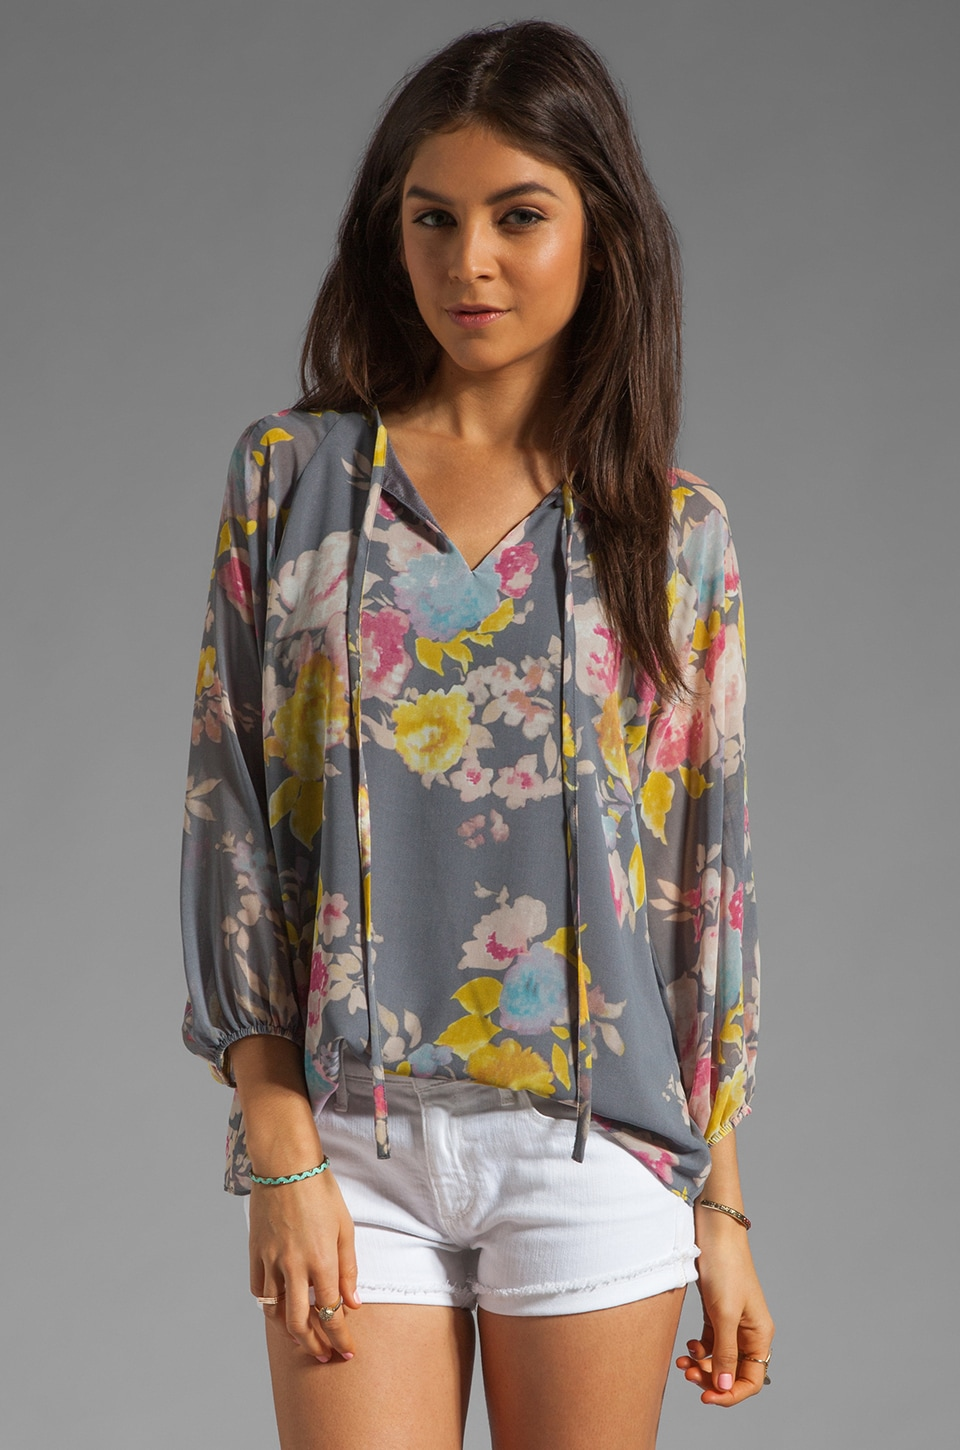 MM Couture by Miss Me 3/4 Sleeve Printed Top in Multi Print